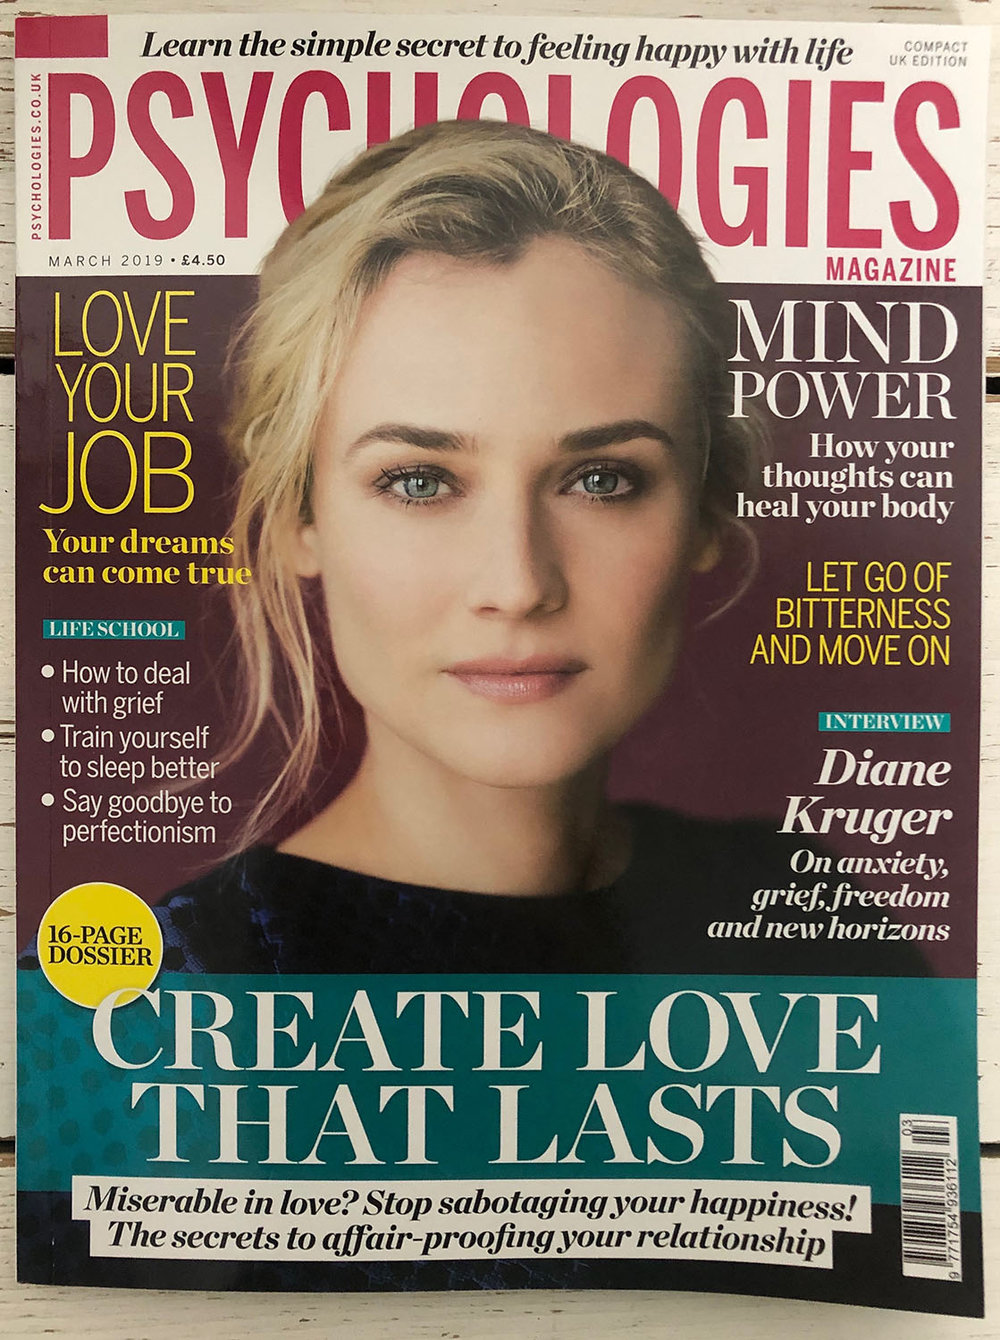 Psychologies Mag front cover March19.jpg